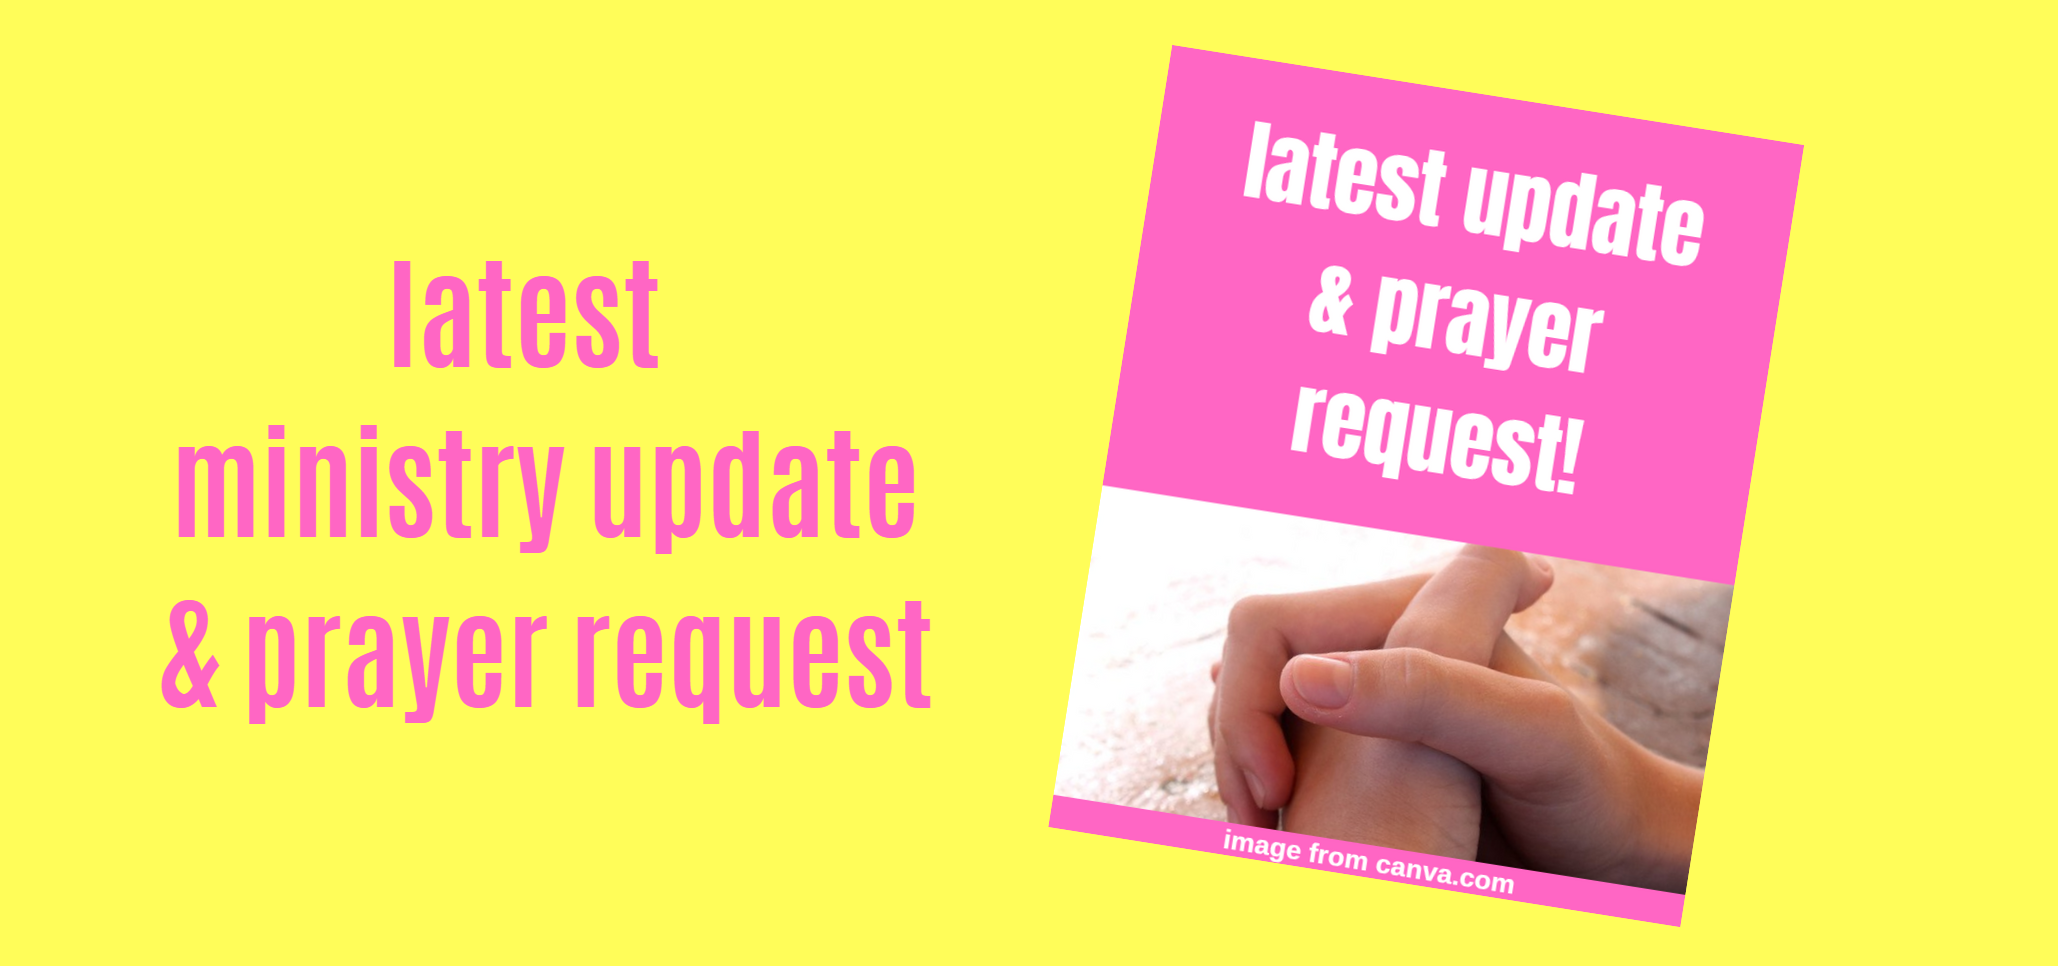 latest UPDATE & PRAYER REQUEST   Walk by Faith Ministry